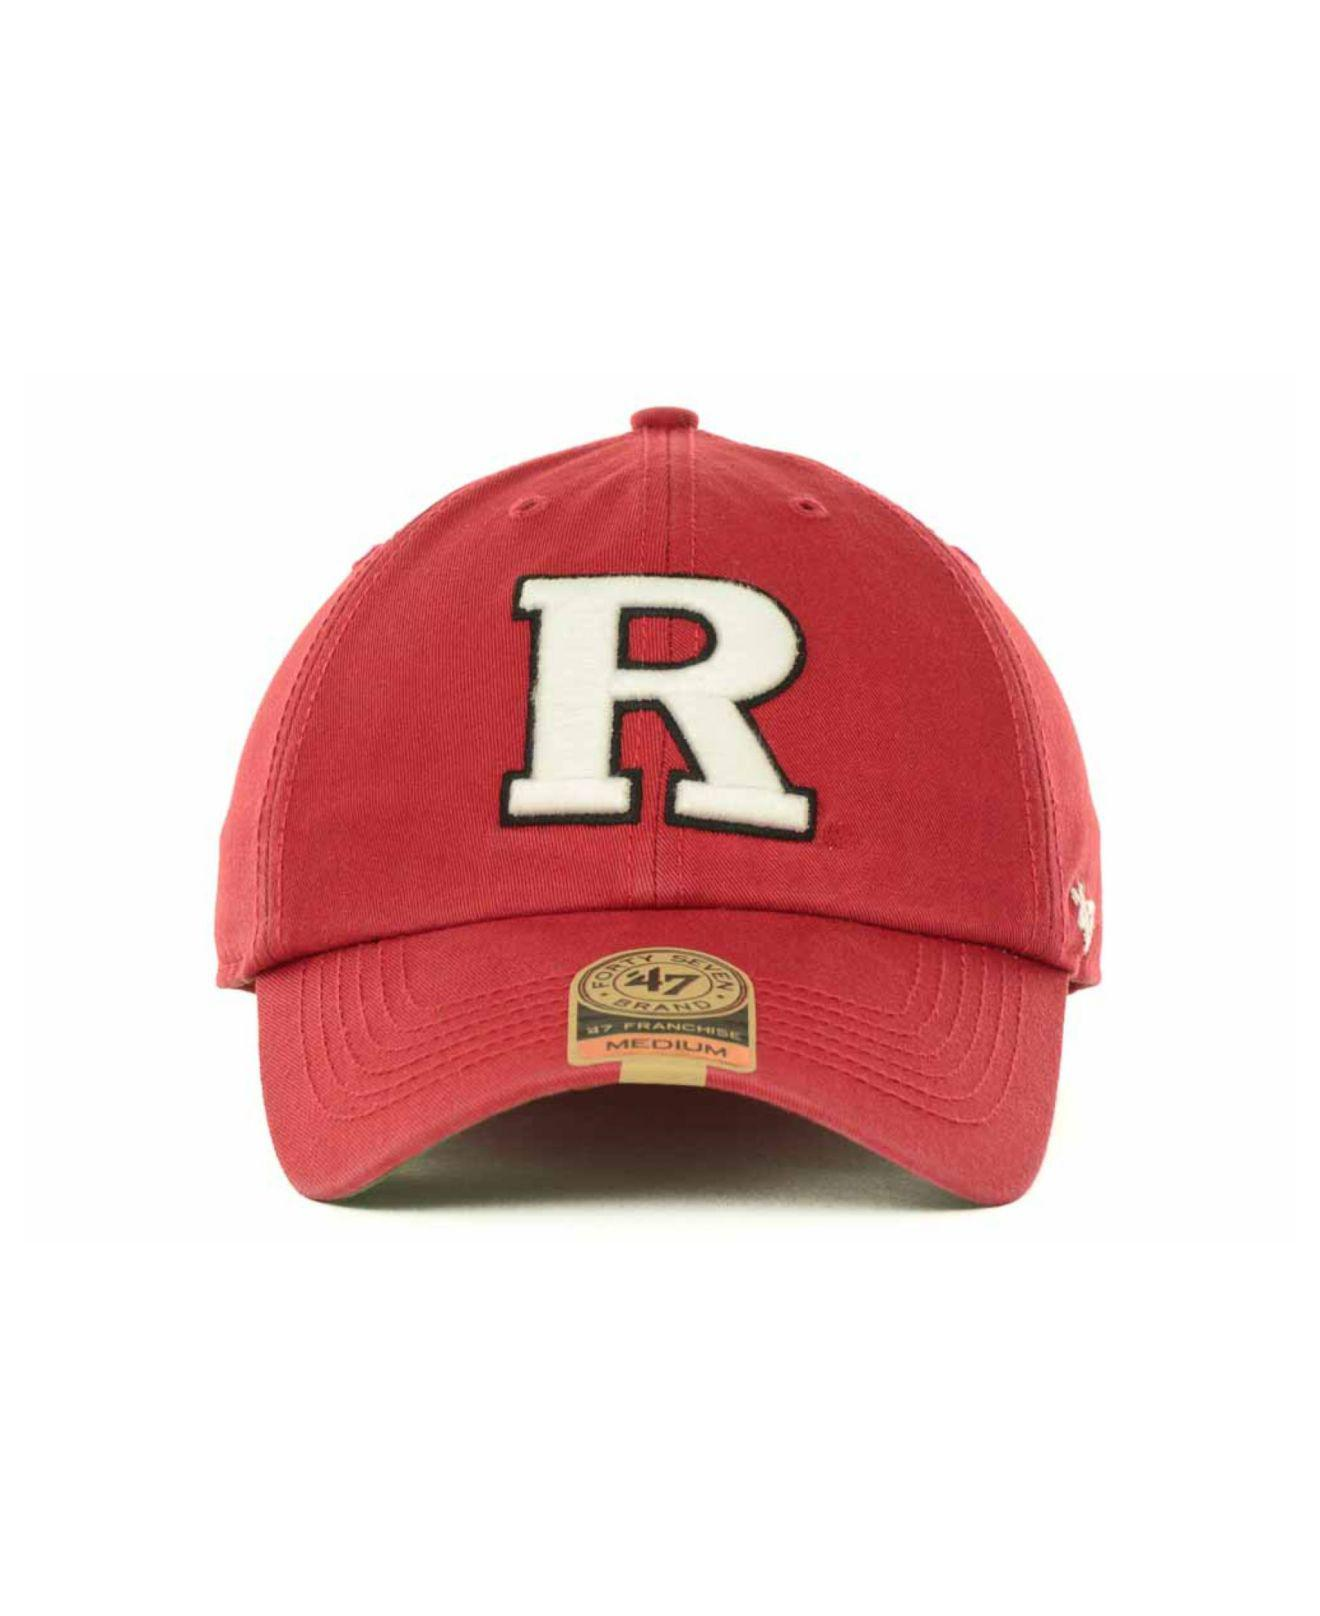 6ccdb37f4af Lyst - 47 Brand Rutgers Scarlet Knights Franchise Cap in Red for Men